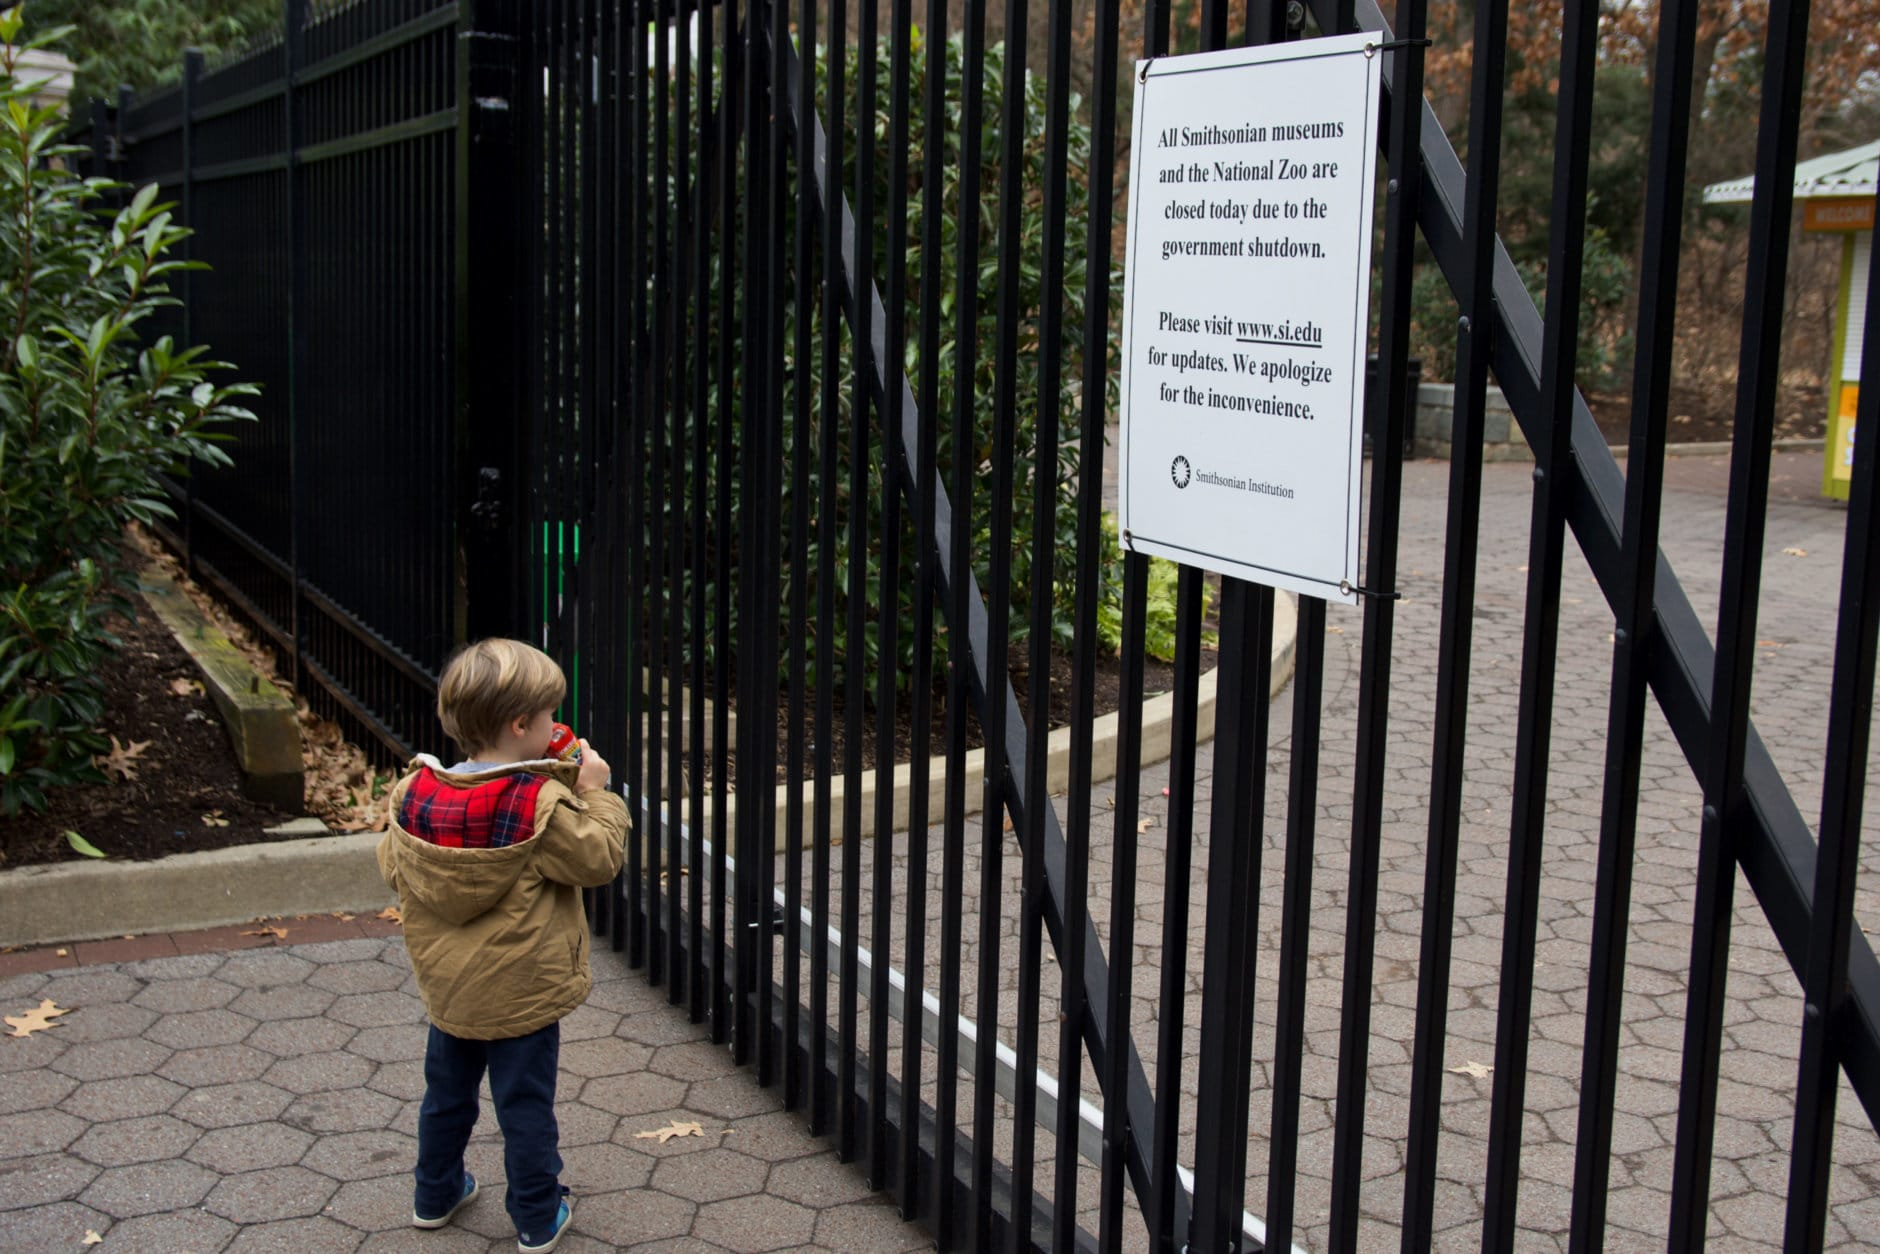 A young boy at the gates of the National Zoo on Wednesday, Jan. 2, 2019, during the government shutdown. (WTOP/Alejandro Alvarez)